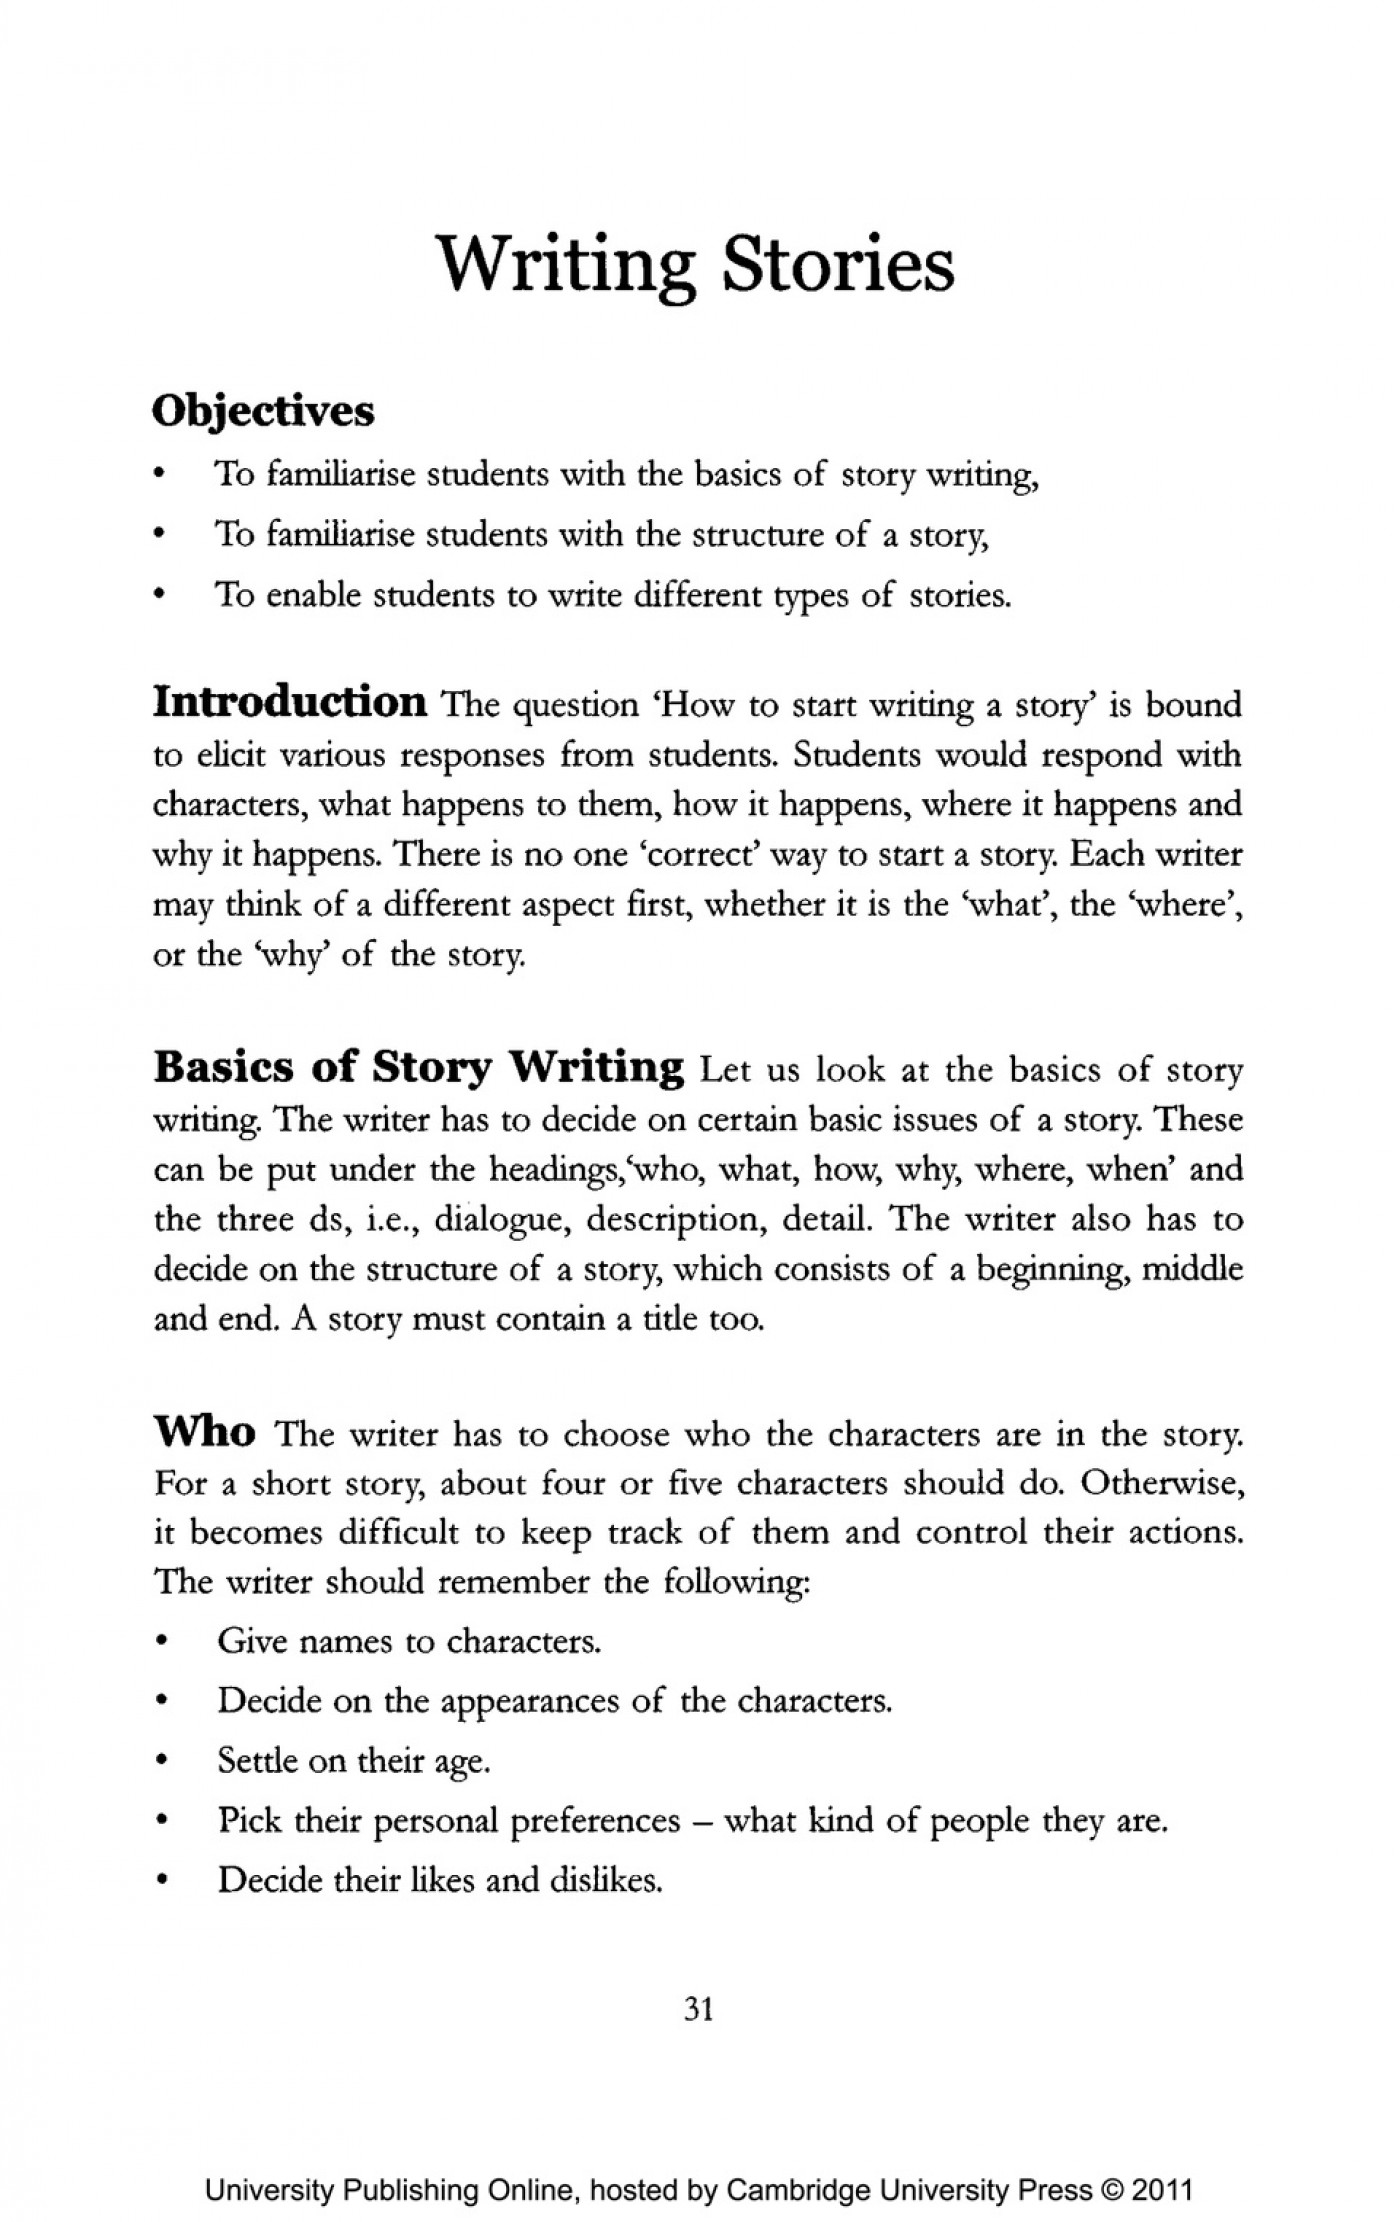 015 Short Stories In Essays Essay Example Dialogue Write Story How To Sample Research Paper 9788175968714c2 Abstrac Comparison An Introduction For Title Good Conclusion The Of Impressive Fiction Analysis Examples Format 1400